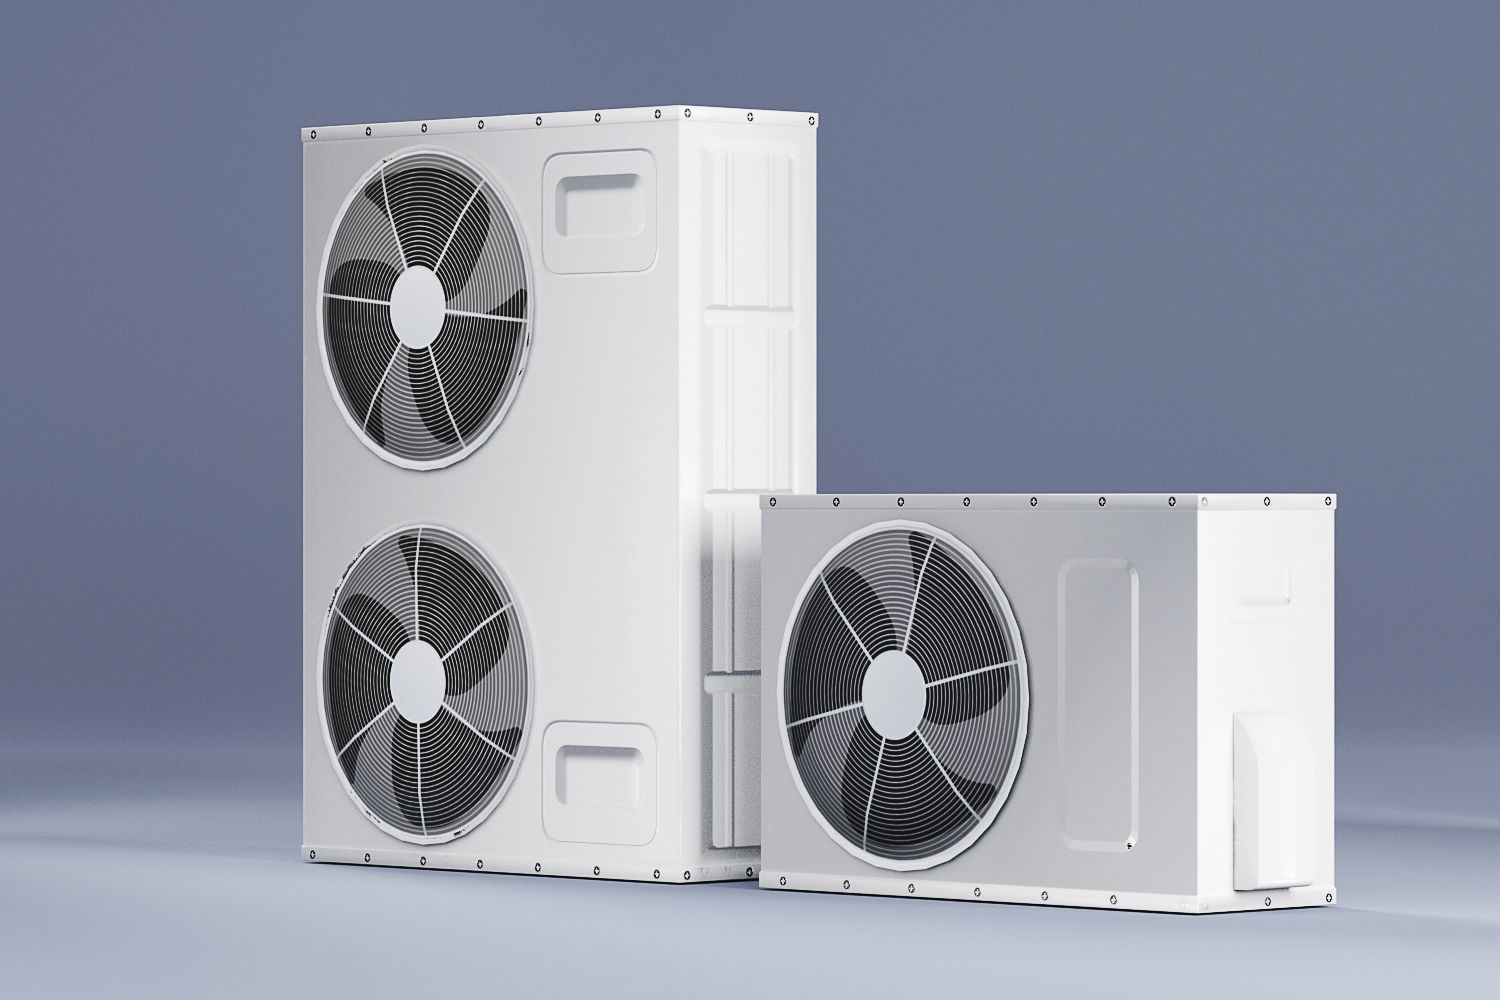 Sample Model of Split air conditioner outdoor box low poly